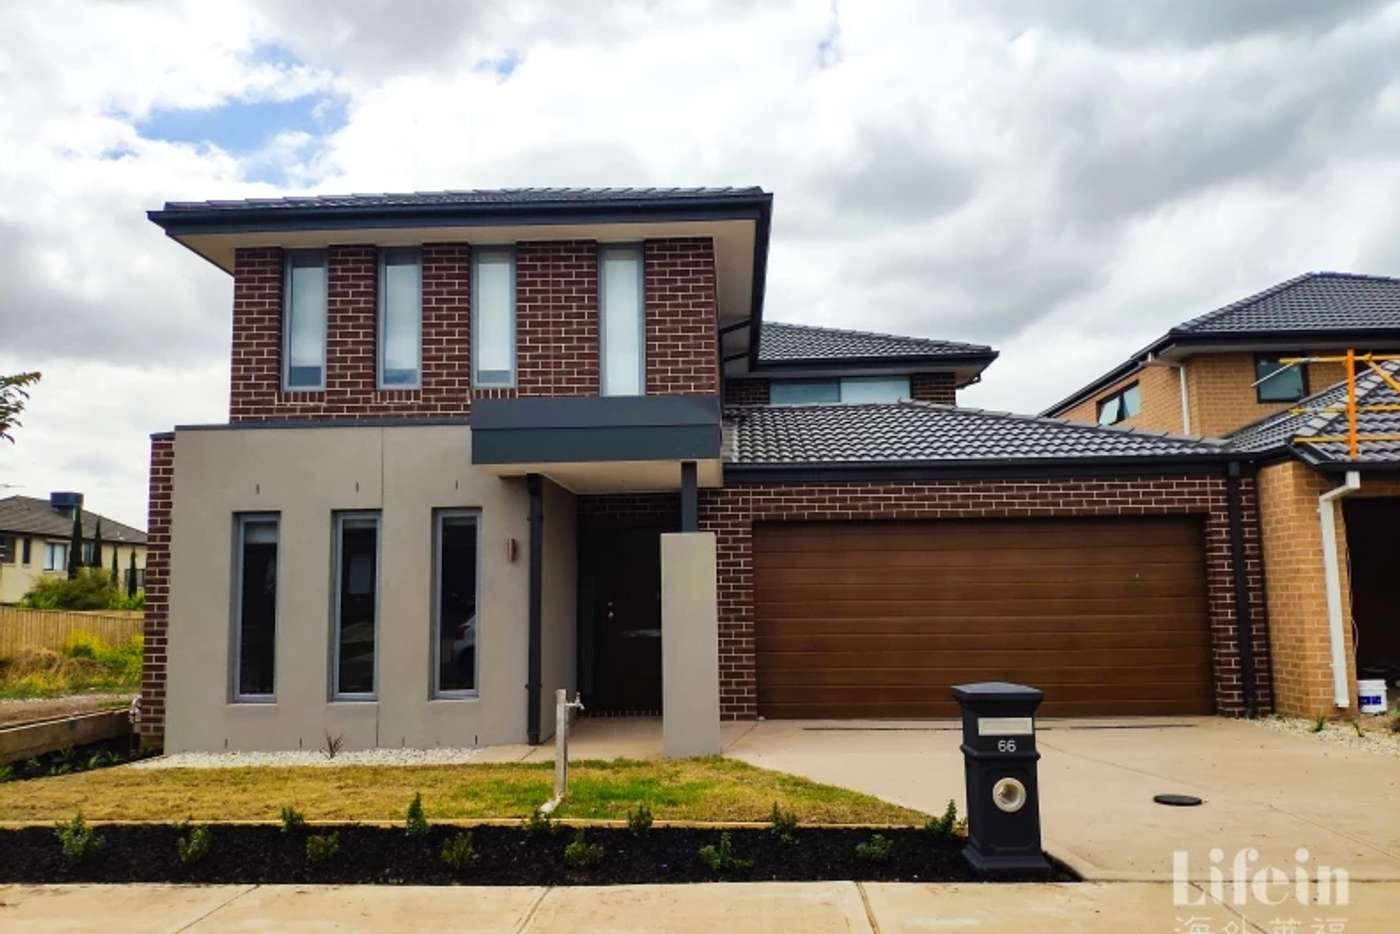 Main view of Homely house listing, 66 Evesham Drive, Point Cook VIC 3030